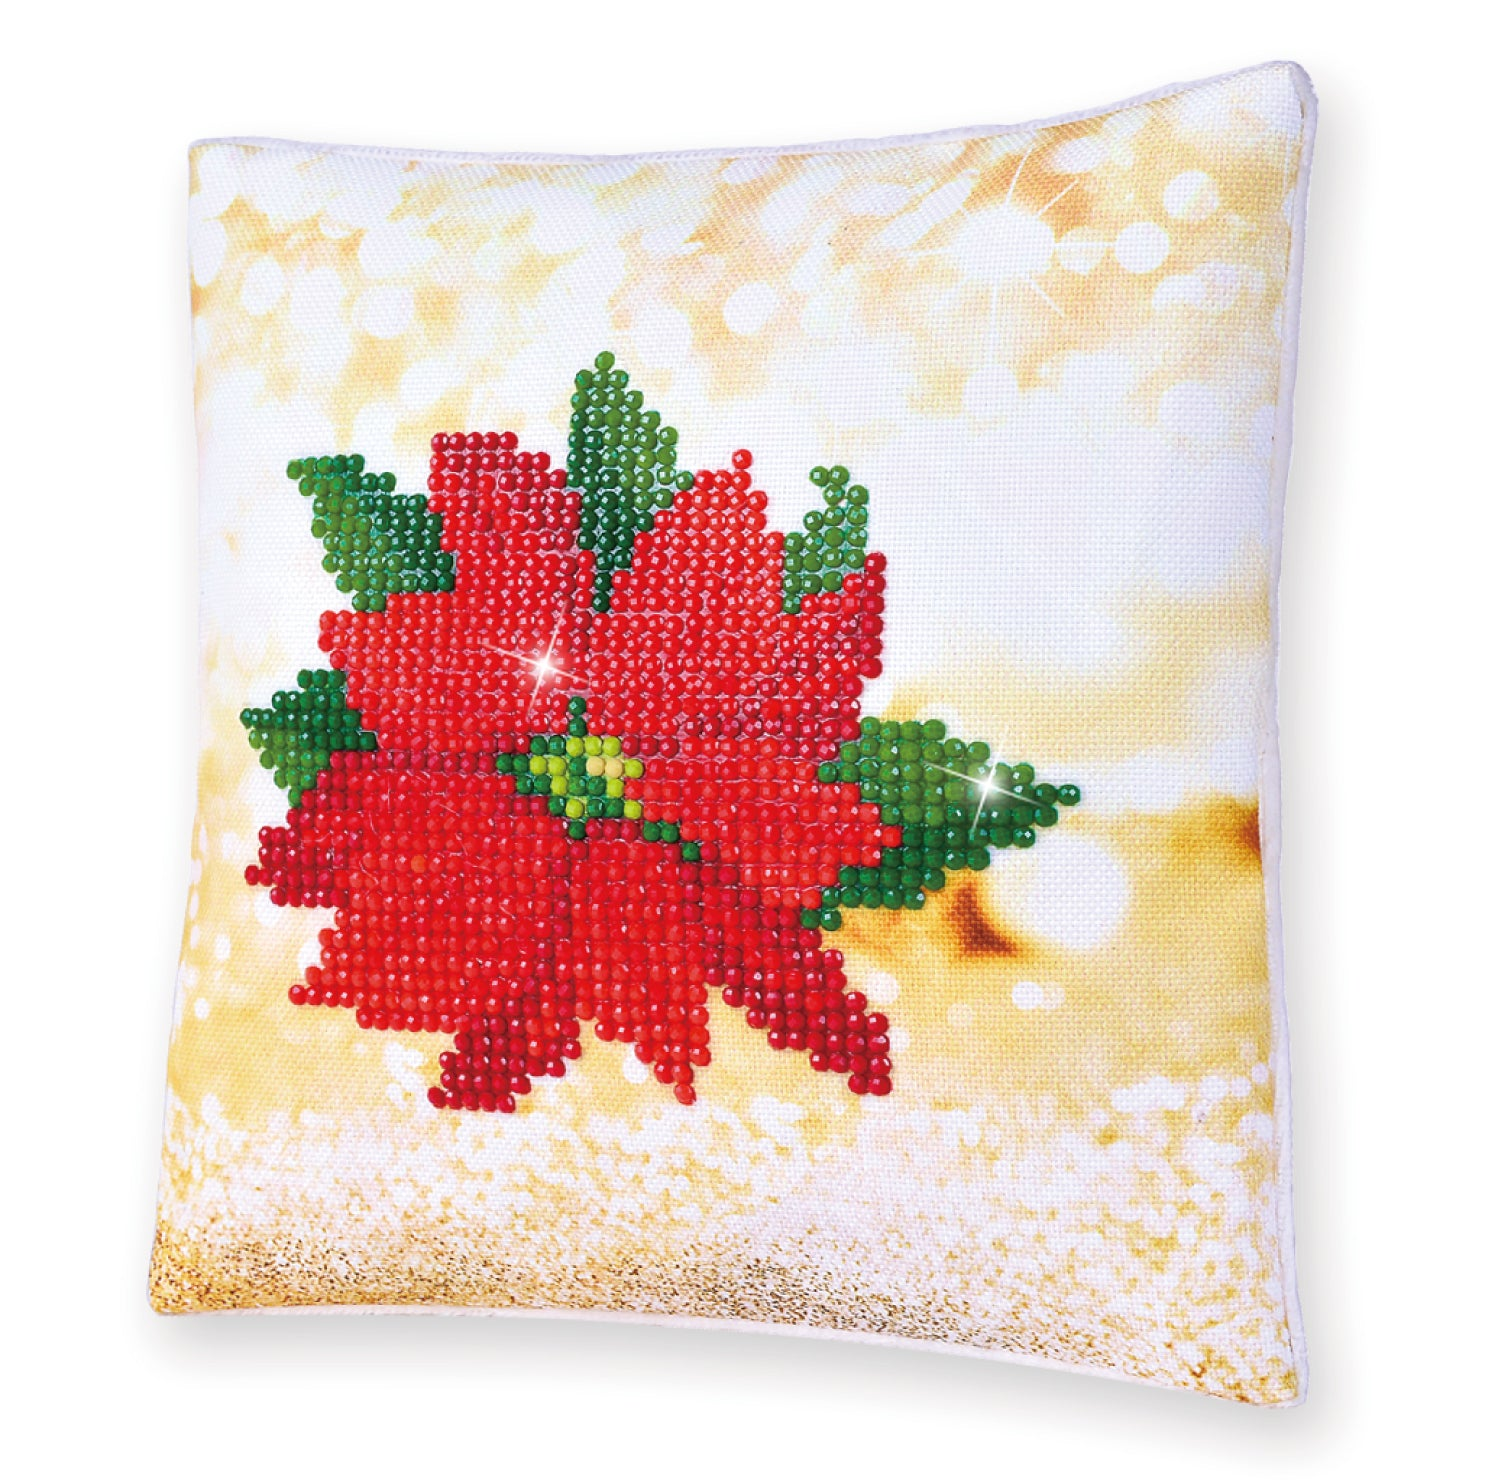 Diamond Dotz Poinsettia Pillow